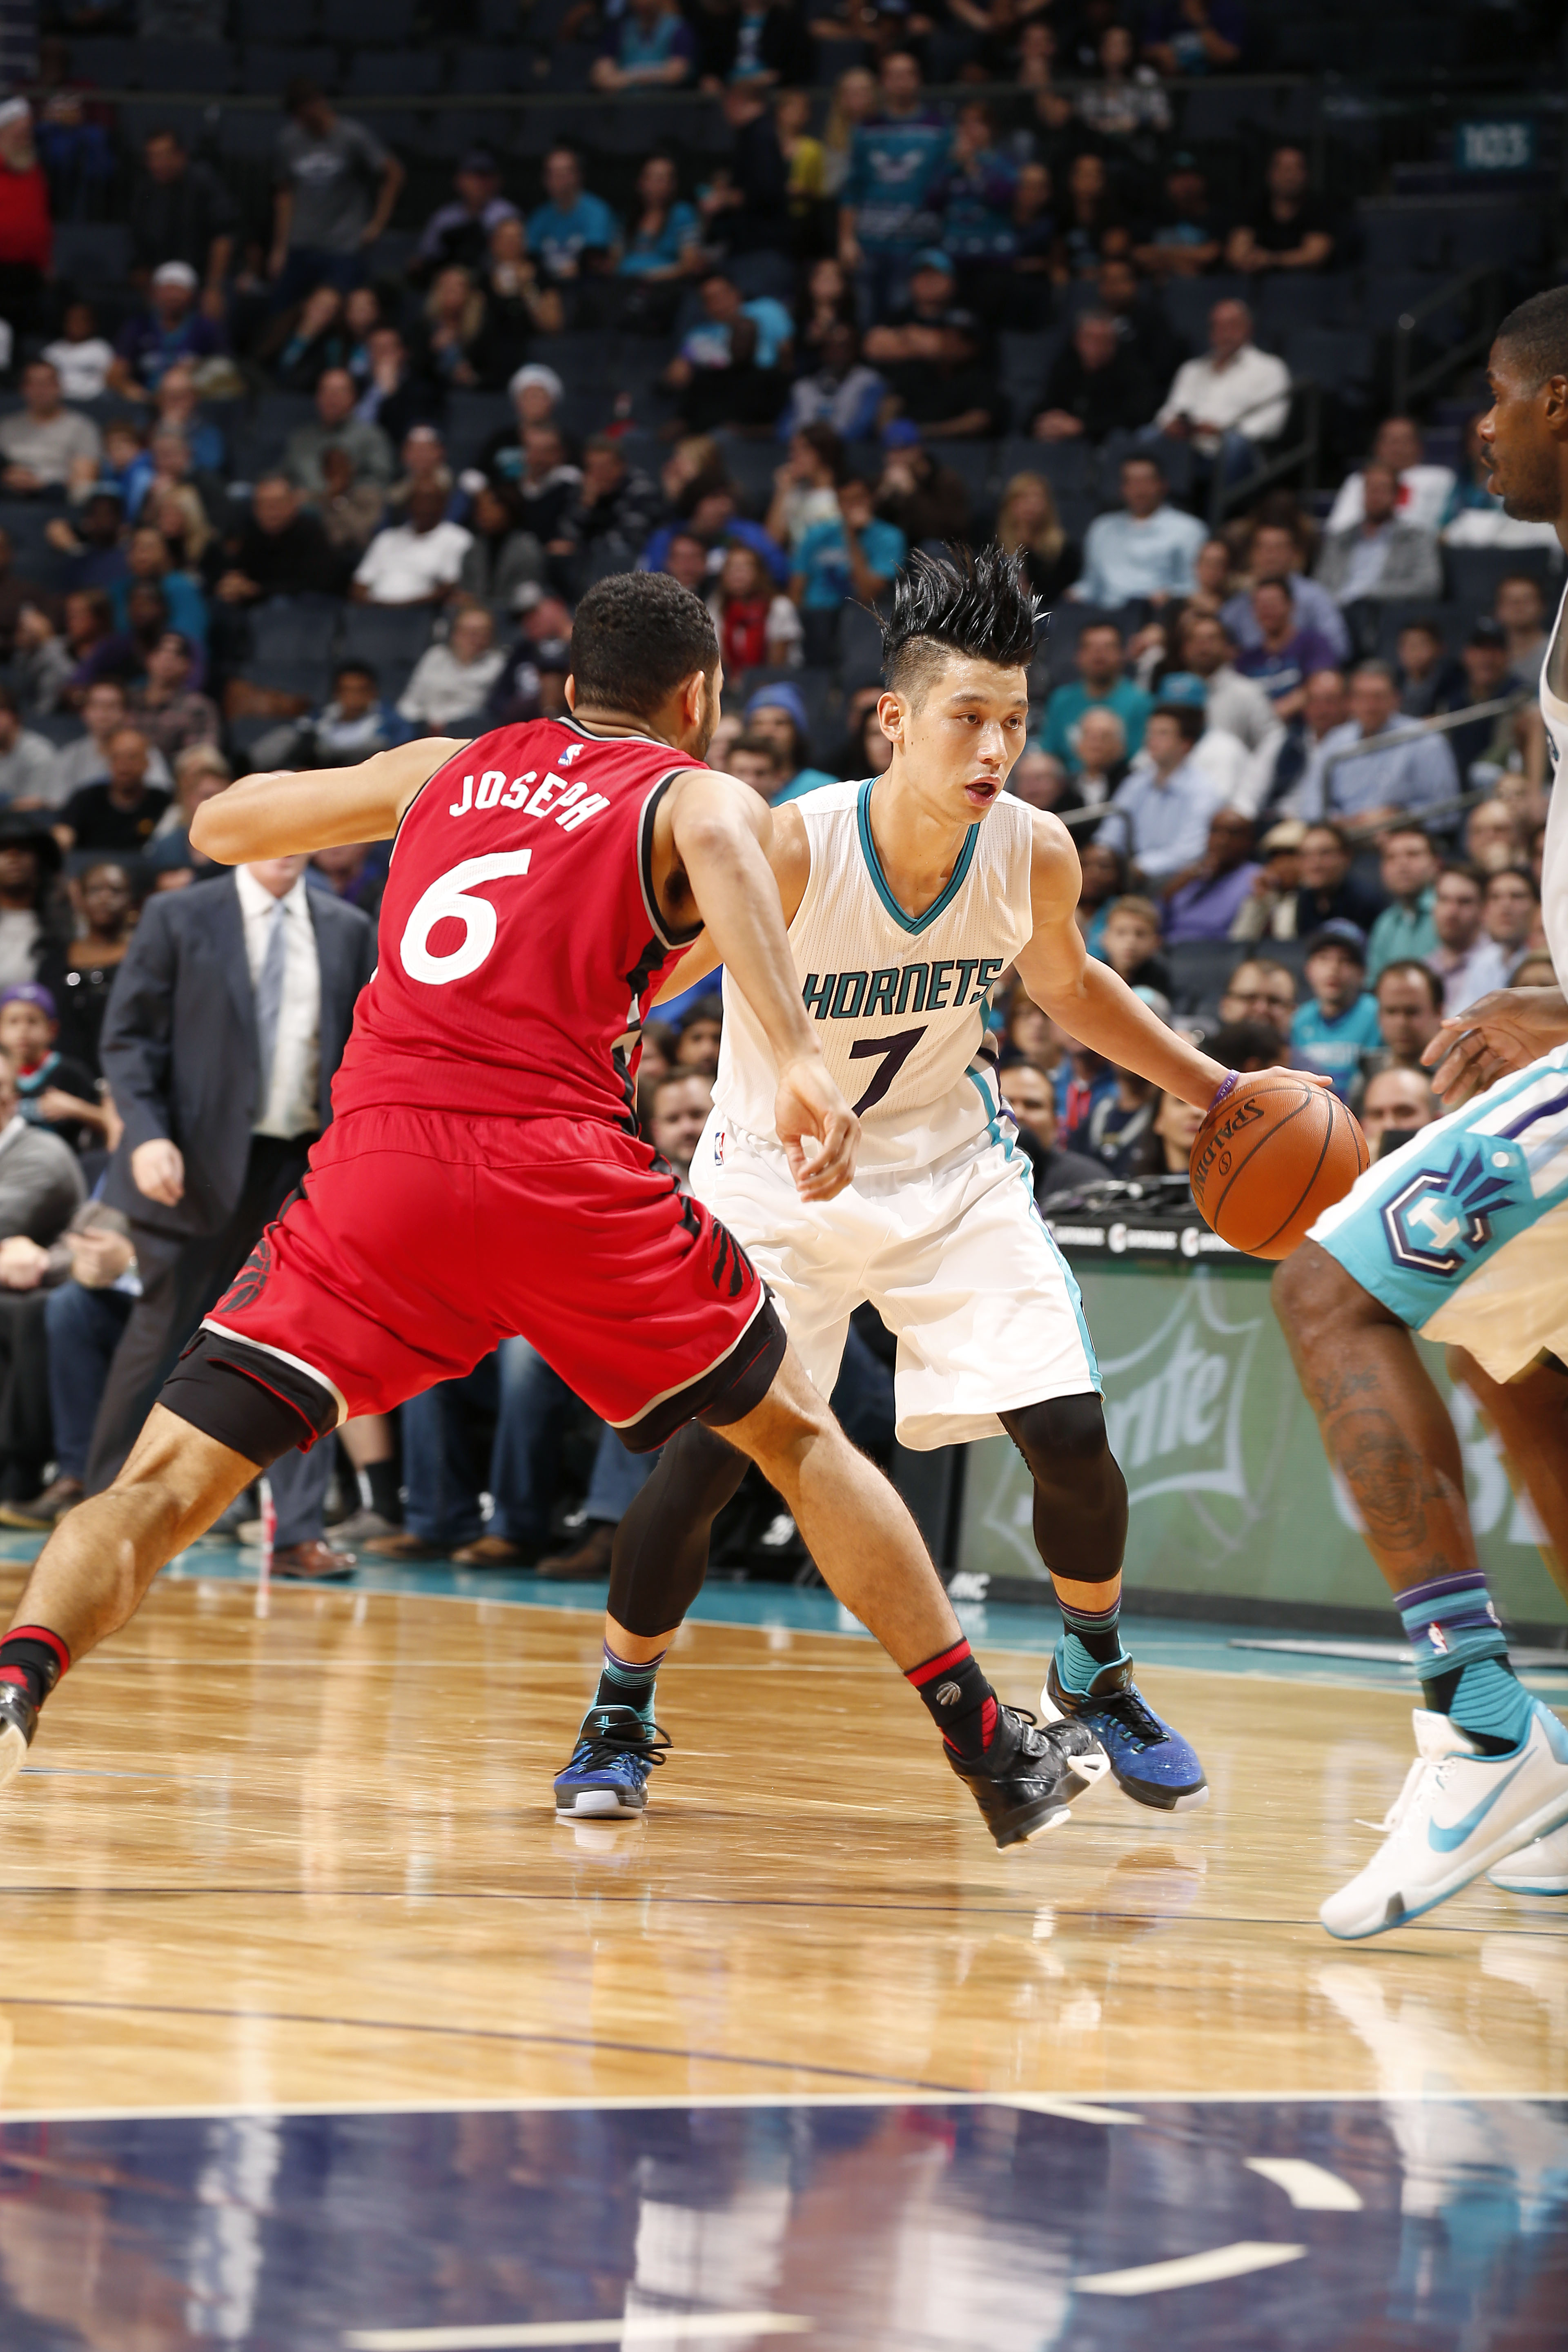 CHARLOTTE, NC - DECEMBER 17: Jeremy Lin #7 of the Charlotte Hornets handles the ball during the game against the Toronto Raptors on December 17, 2015 at Time Warner Cable Arena in Charlotte, North Carolina. (Photo by Brock Williams-Smith/NBAE via Getty Im